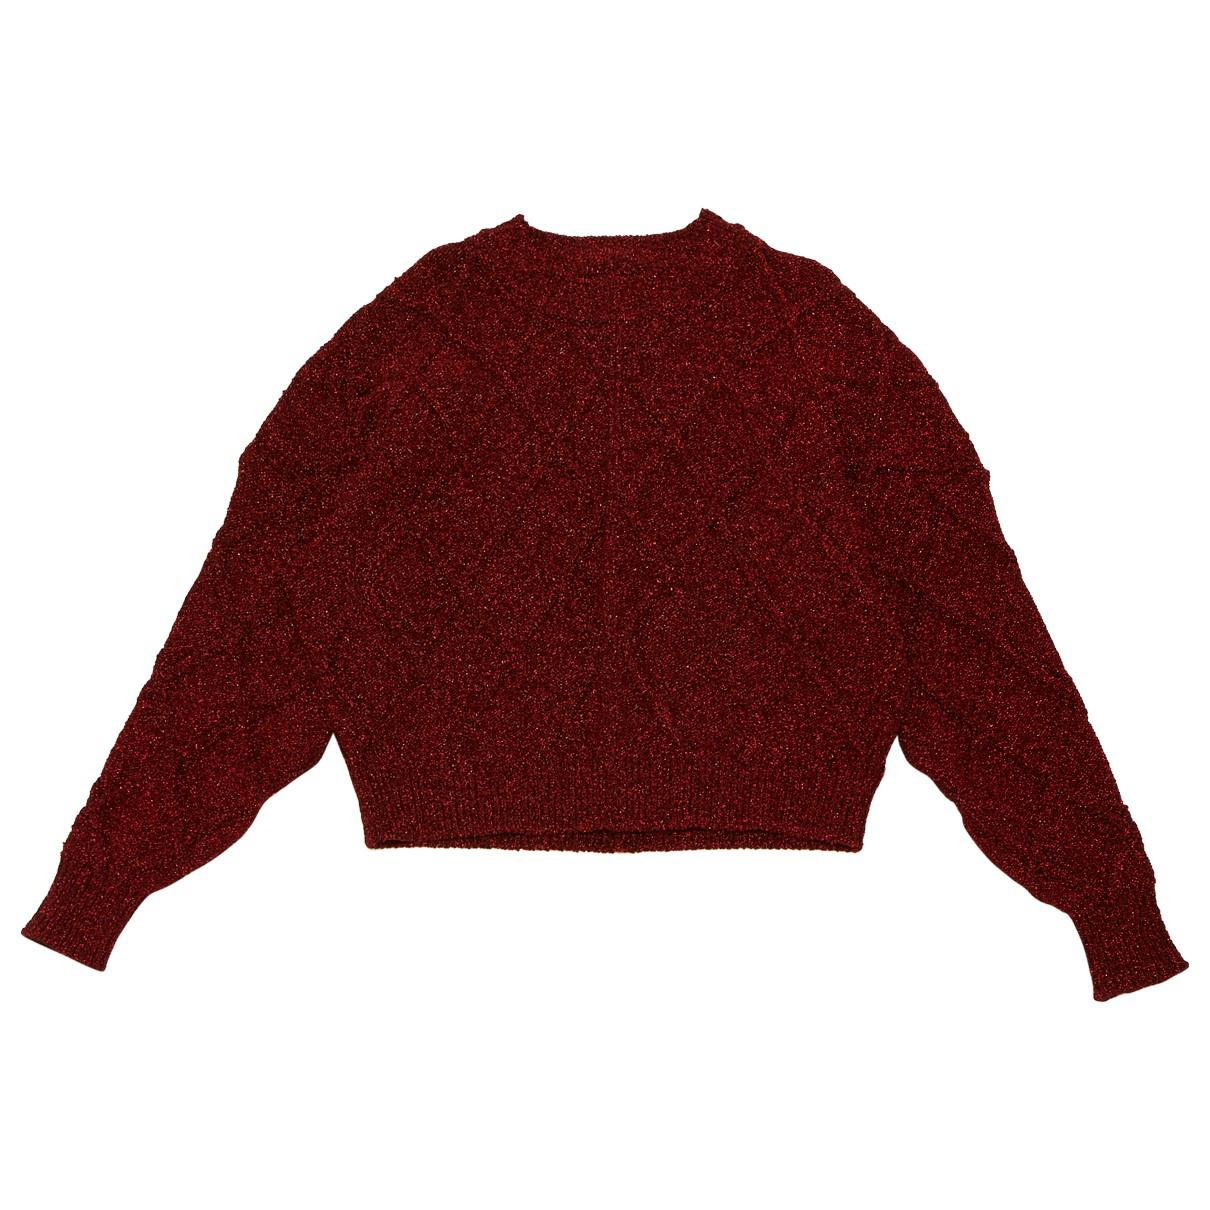 eea777789cc Isabel Marant. Women s Red Wool Knitwear. £173 £156 From Vestiaire  Collective